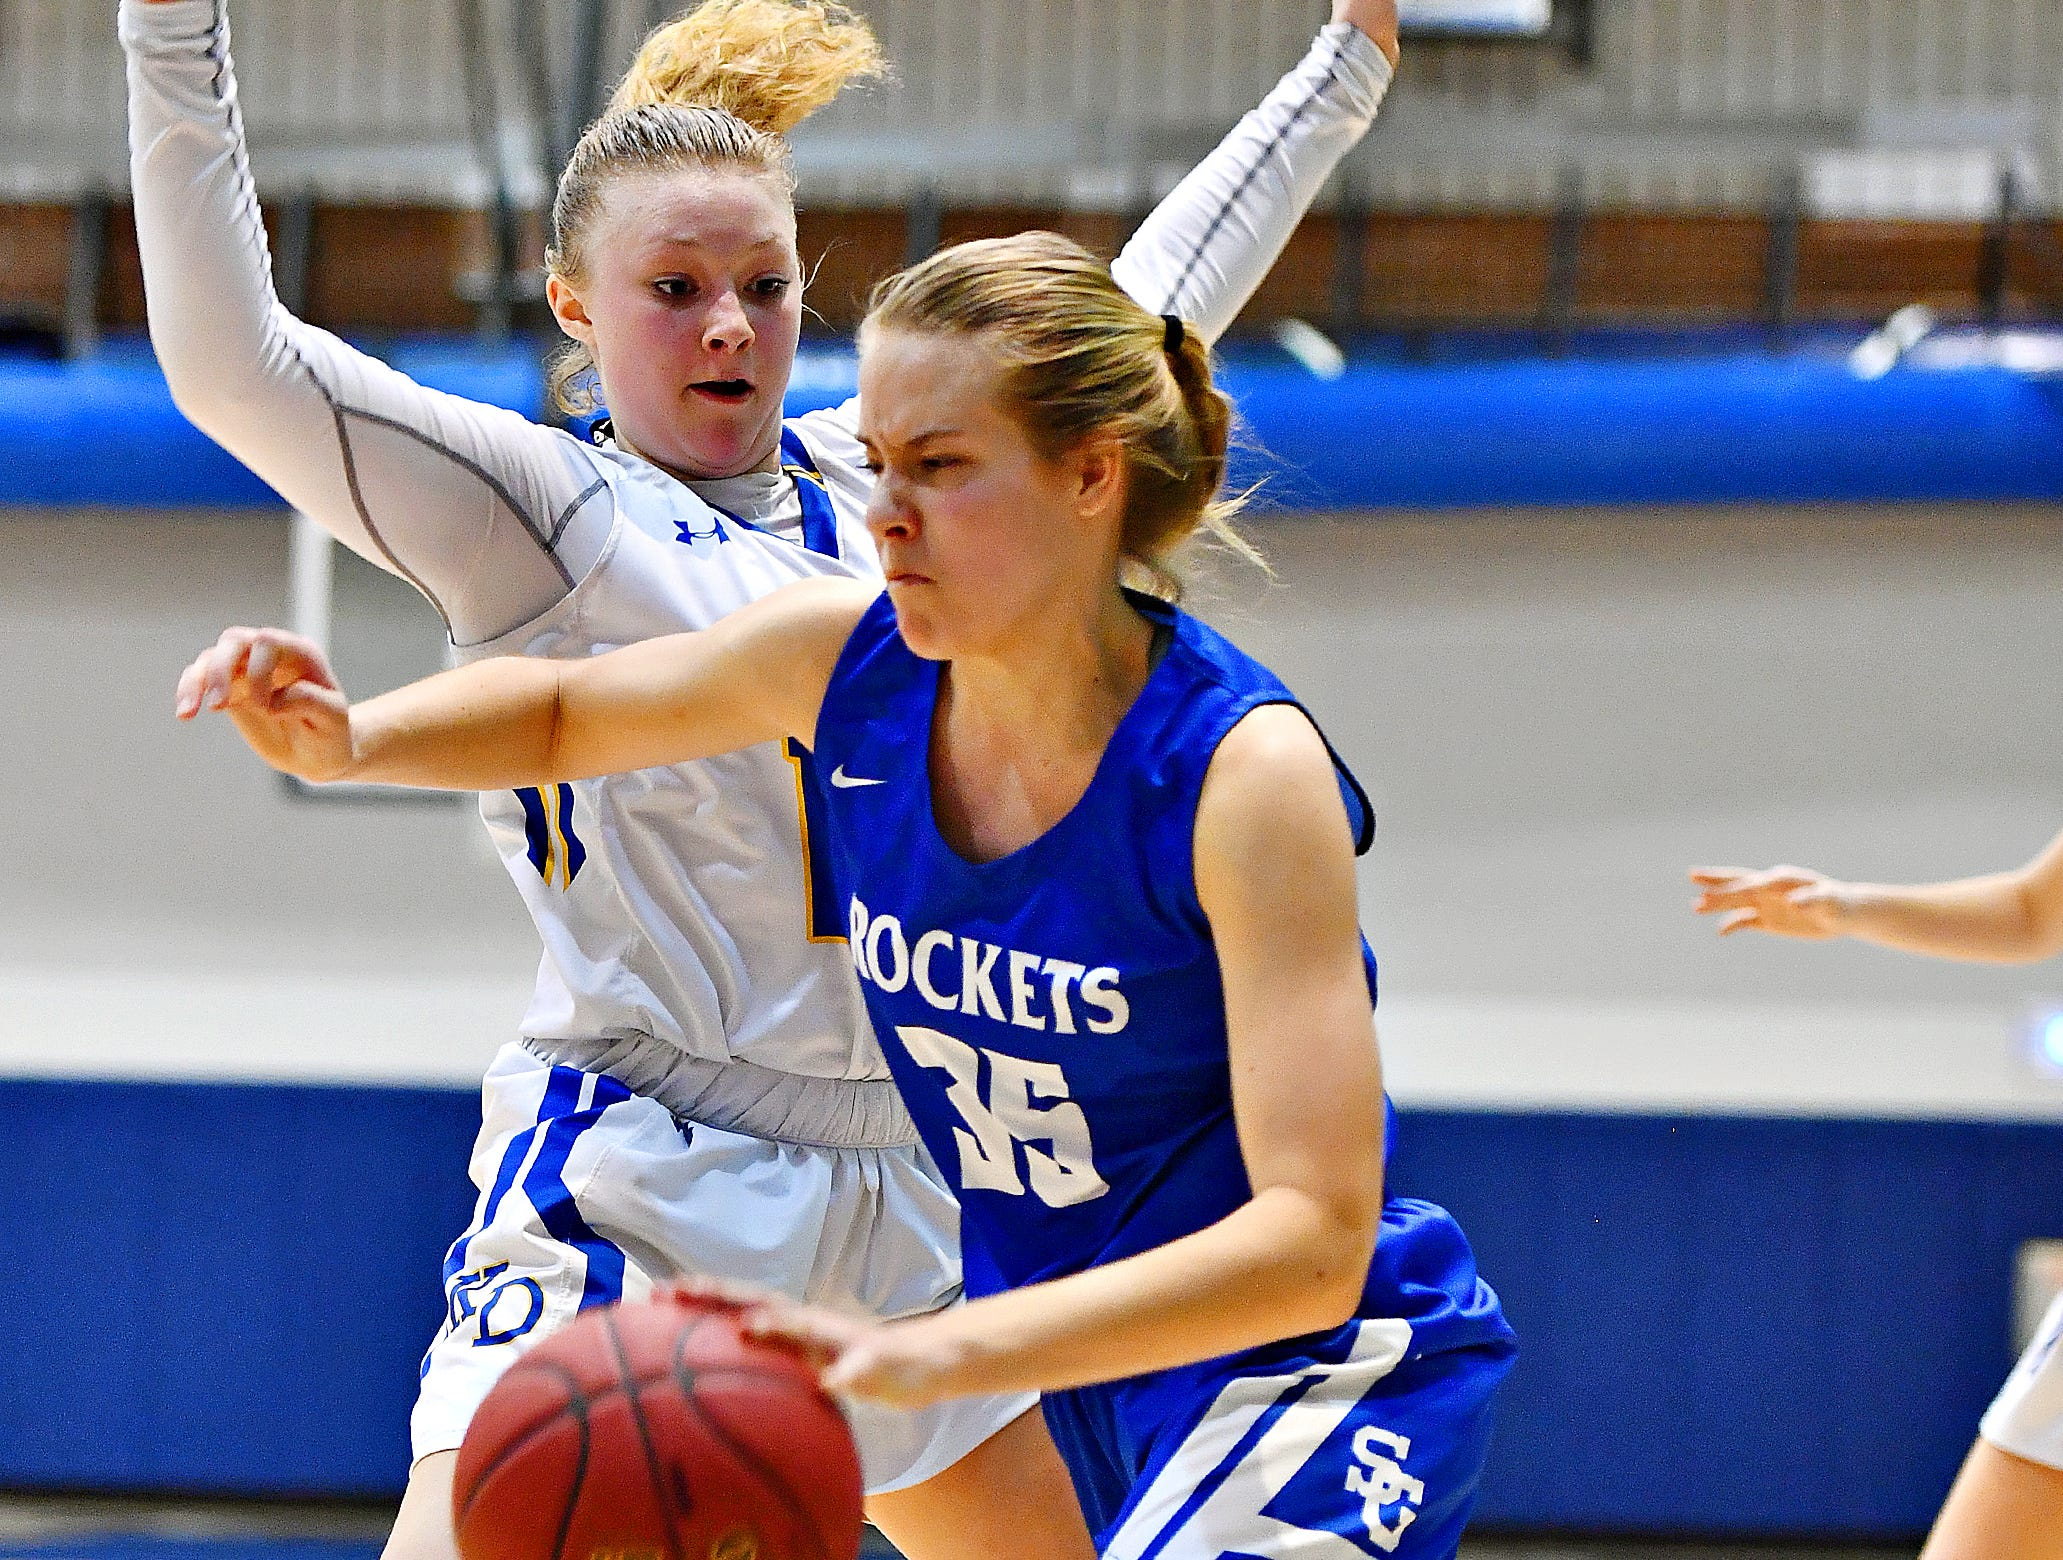 Spring Grove's Brooklyn Naylor, front, pushes to get past Kennard-Dale's Chandler Swanson during York-Adams League girls' basketball quarterfinal action at Dallastown Area High School in York Township, Friday, Feb. 8, 2019. Spring Grove would win the game 47-38. Dawn J. Sagert photo